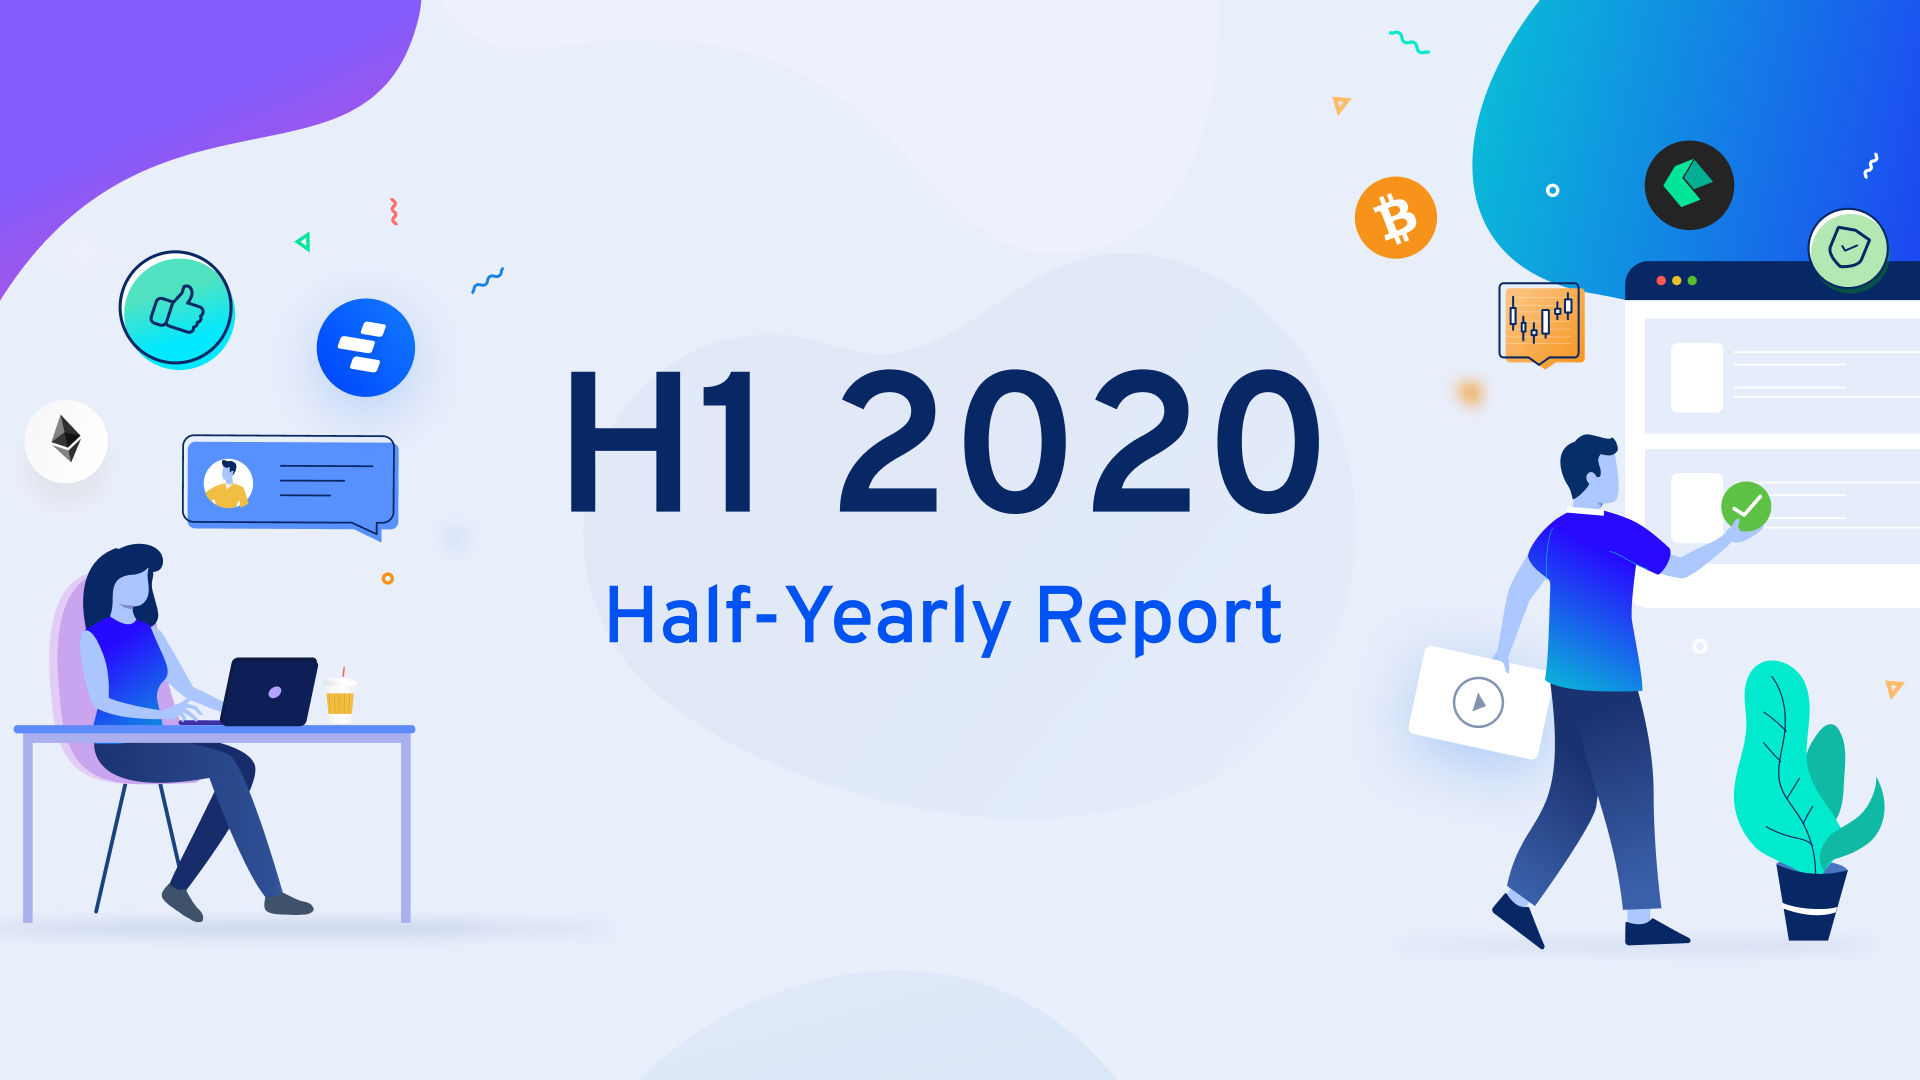 Half-Yearly Report: H1 2020